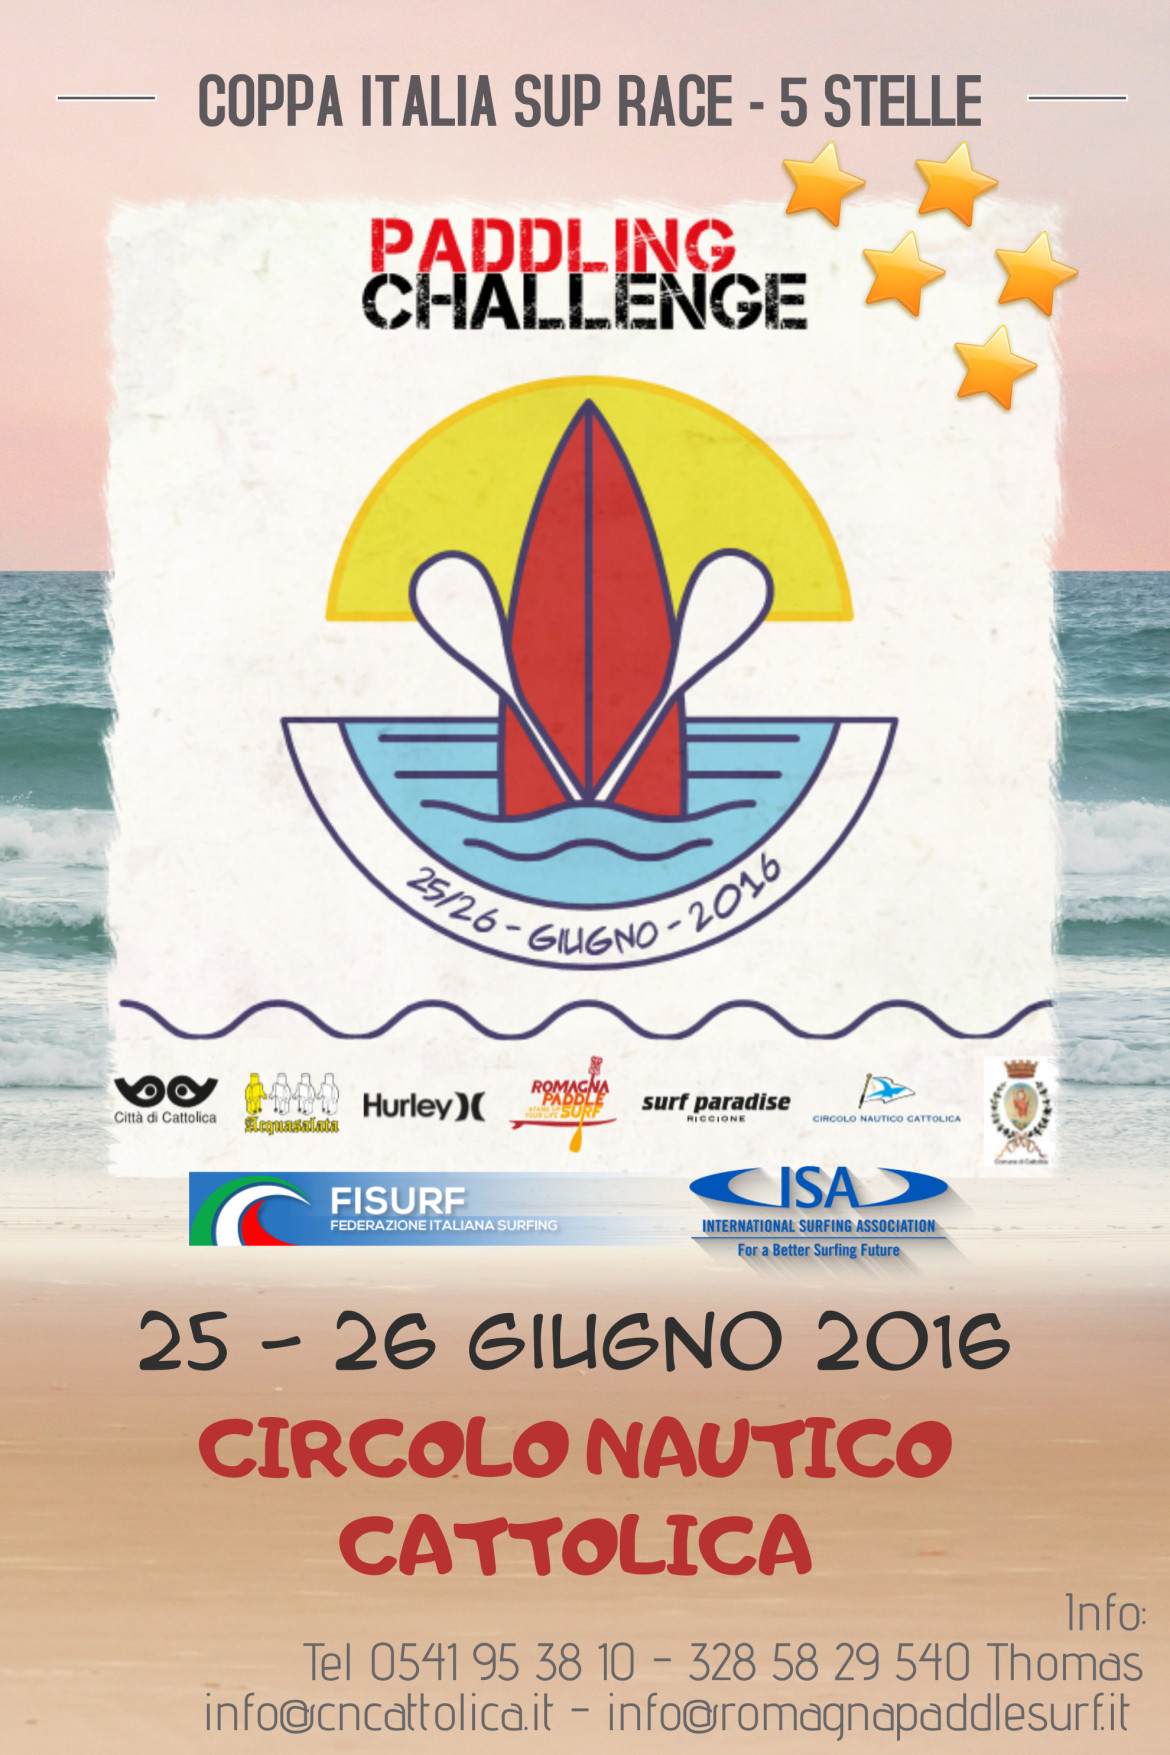 Paddling Challenge HD Resolution